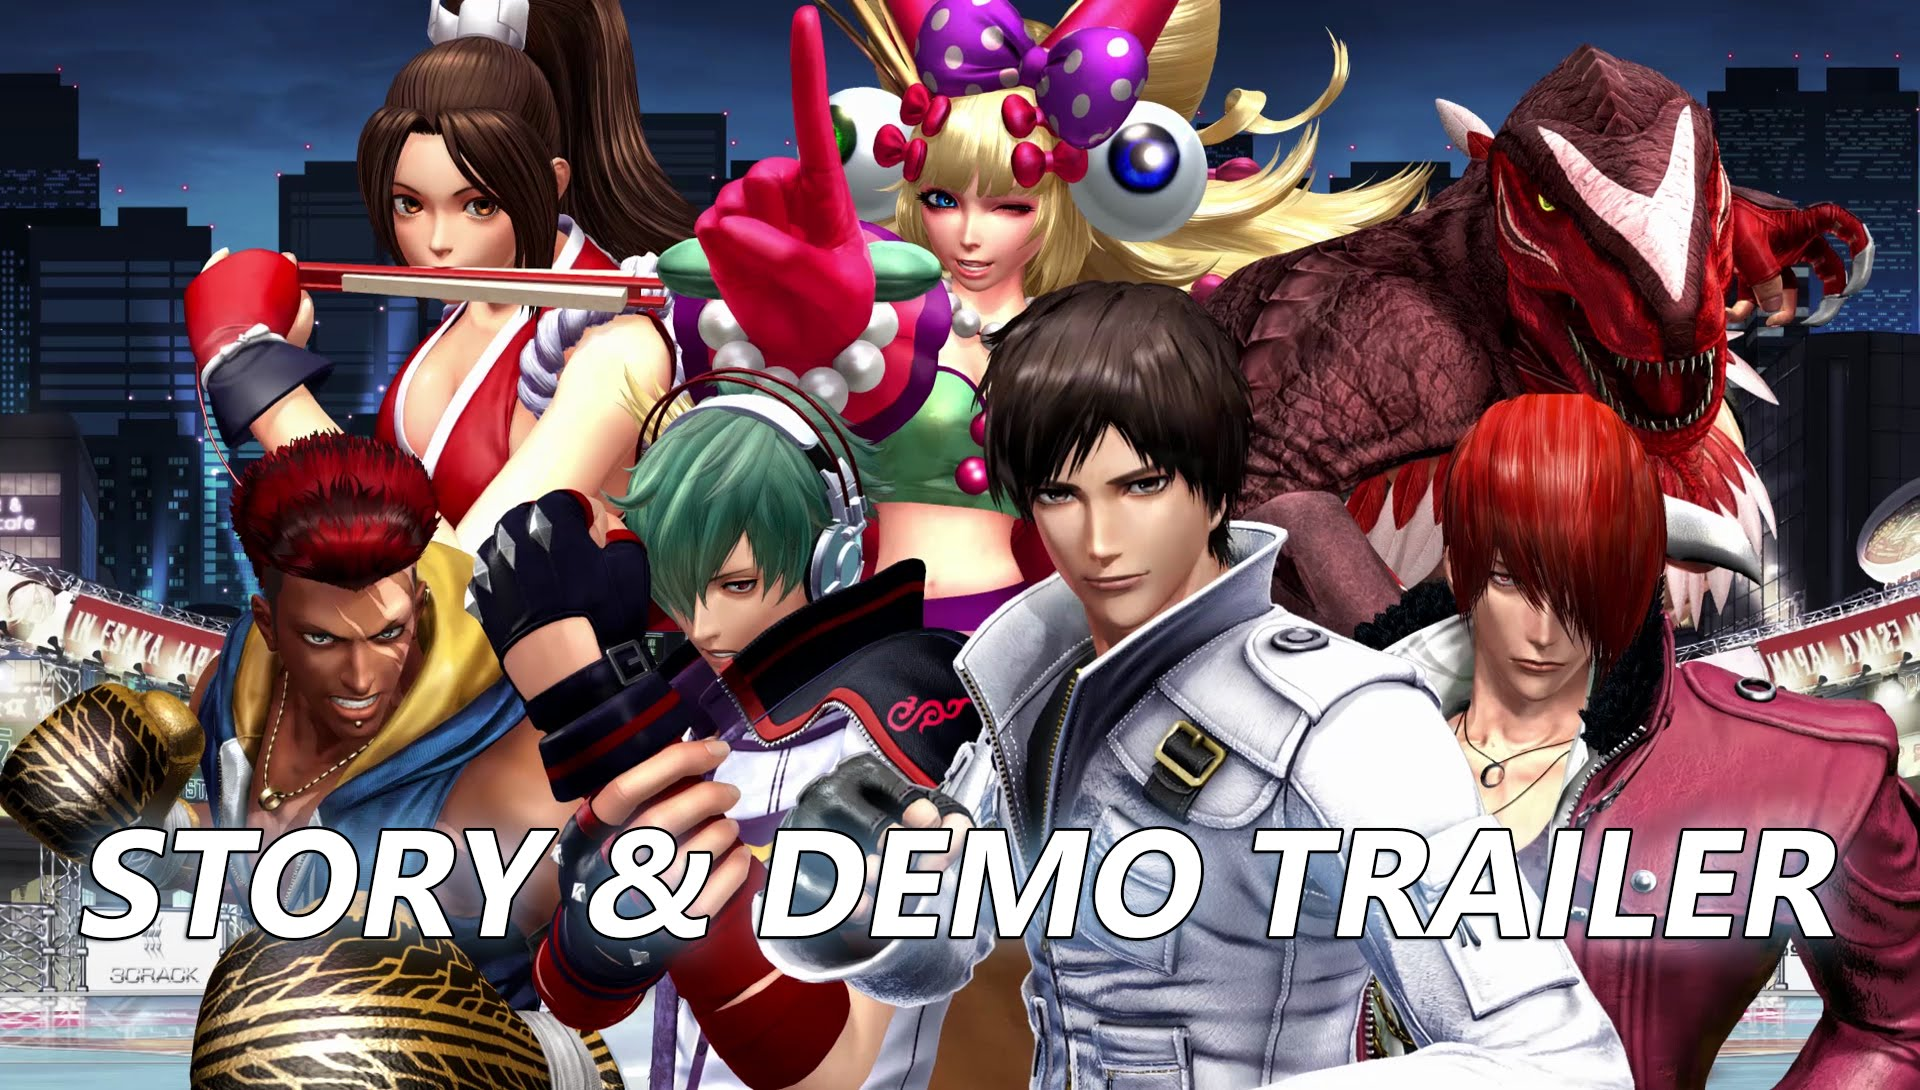 THE KING OF FIGHTERS XIV: Story & Demo Trailer